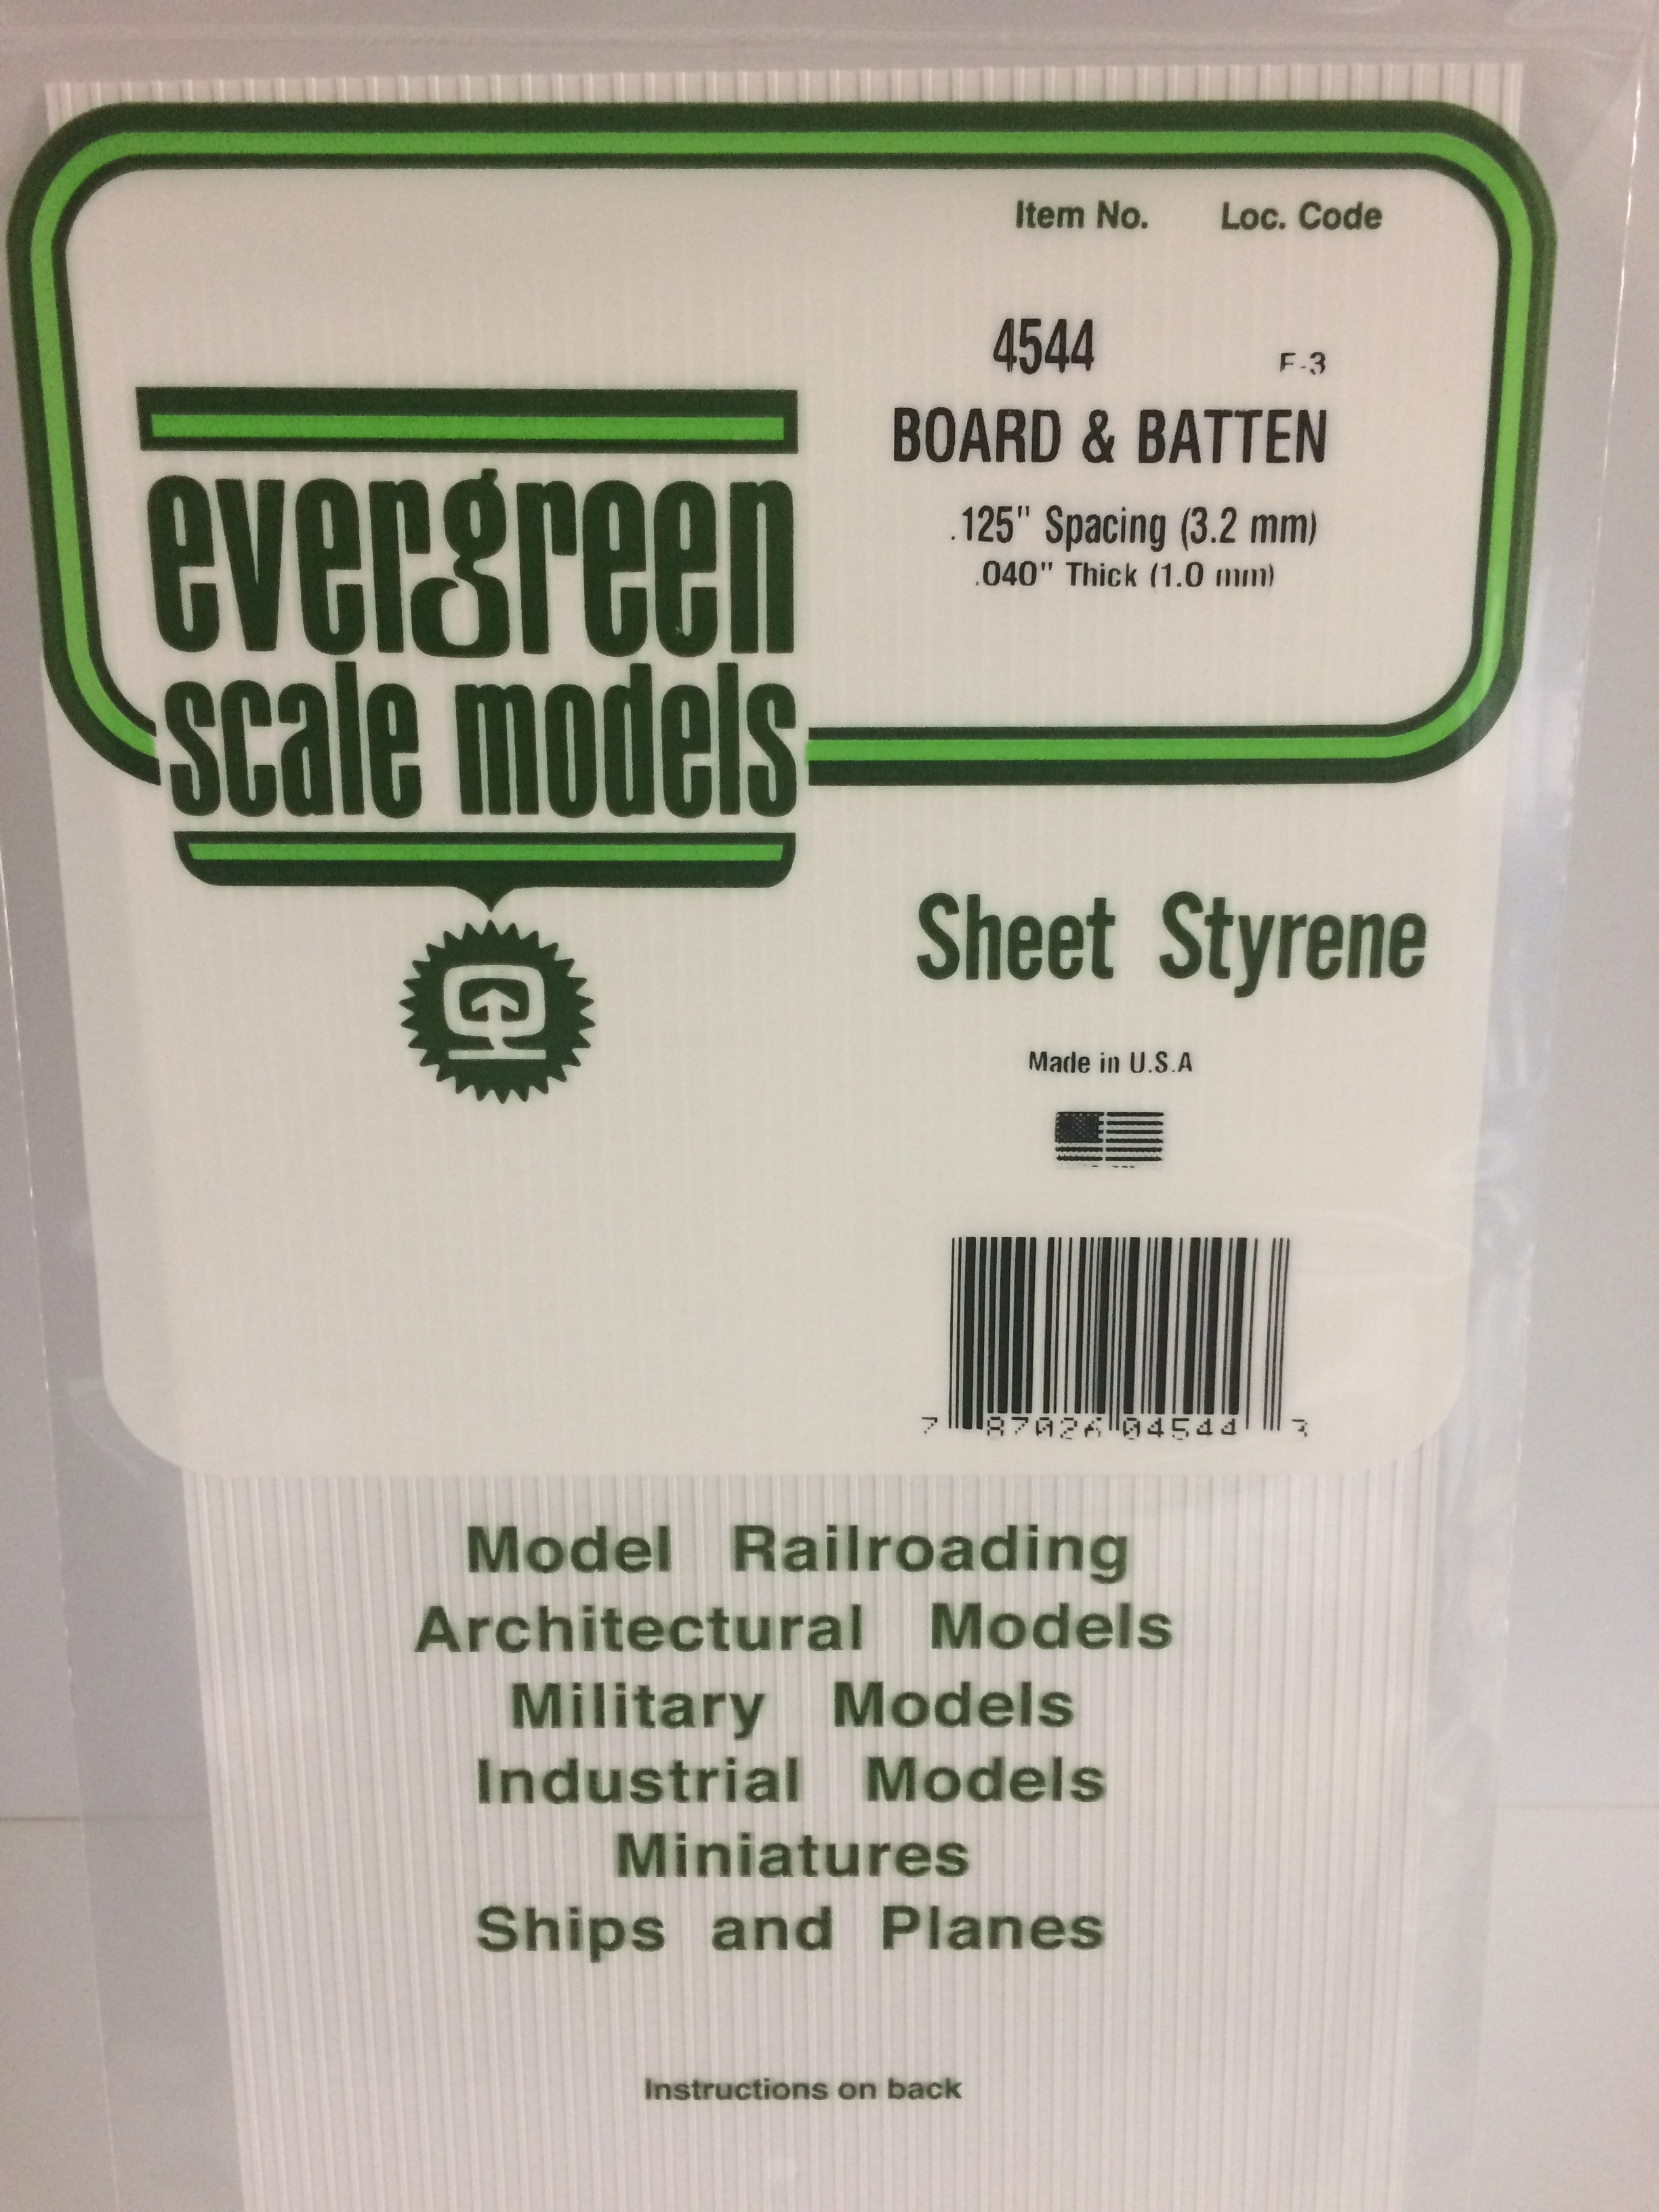 040 1 0mm Opaque White Polystyrene Board And Batten Siding Evergreen Scale Models